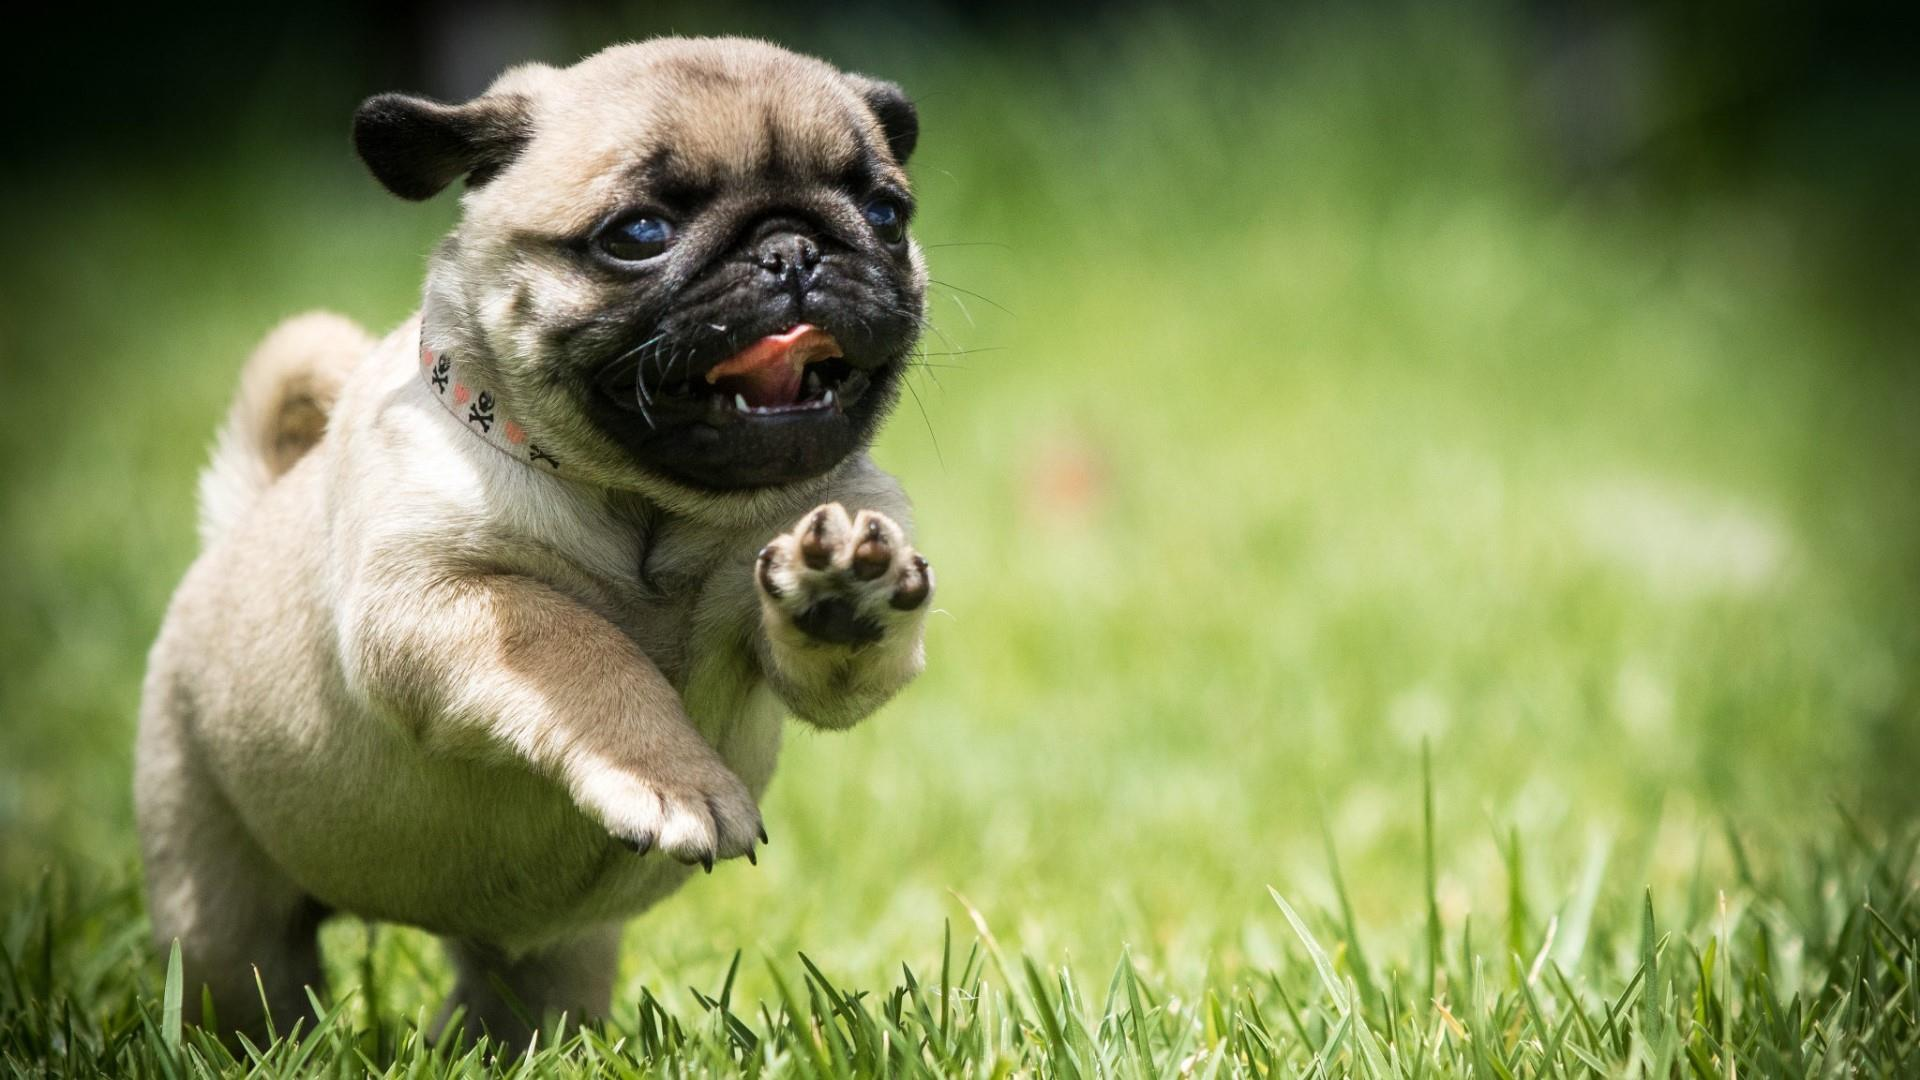 Puppy HD Wallpapers - Wallpaper Cave